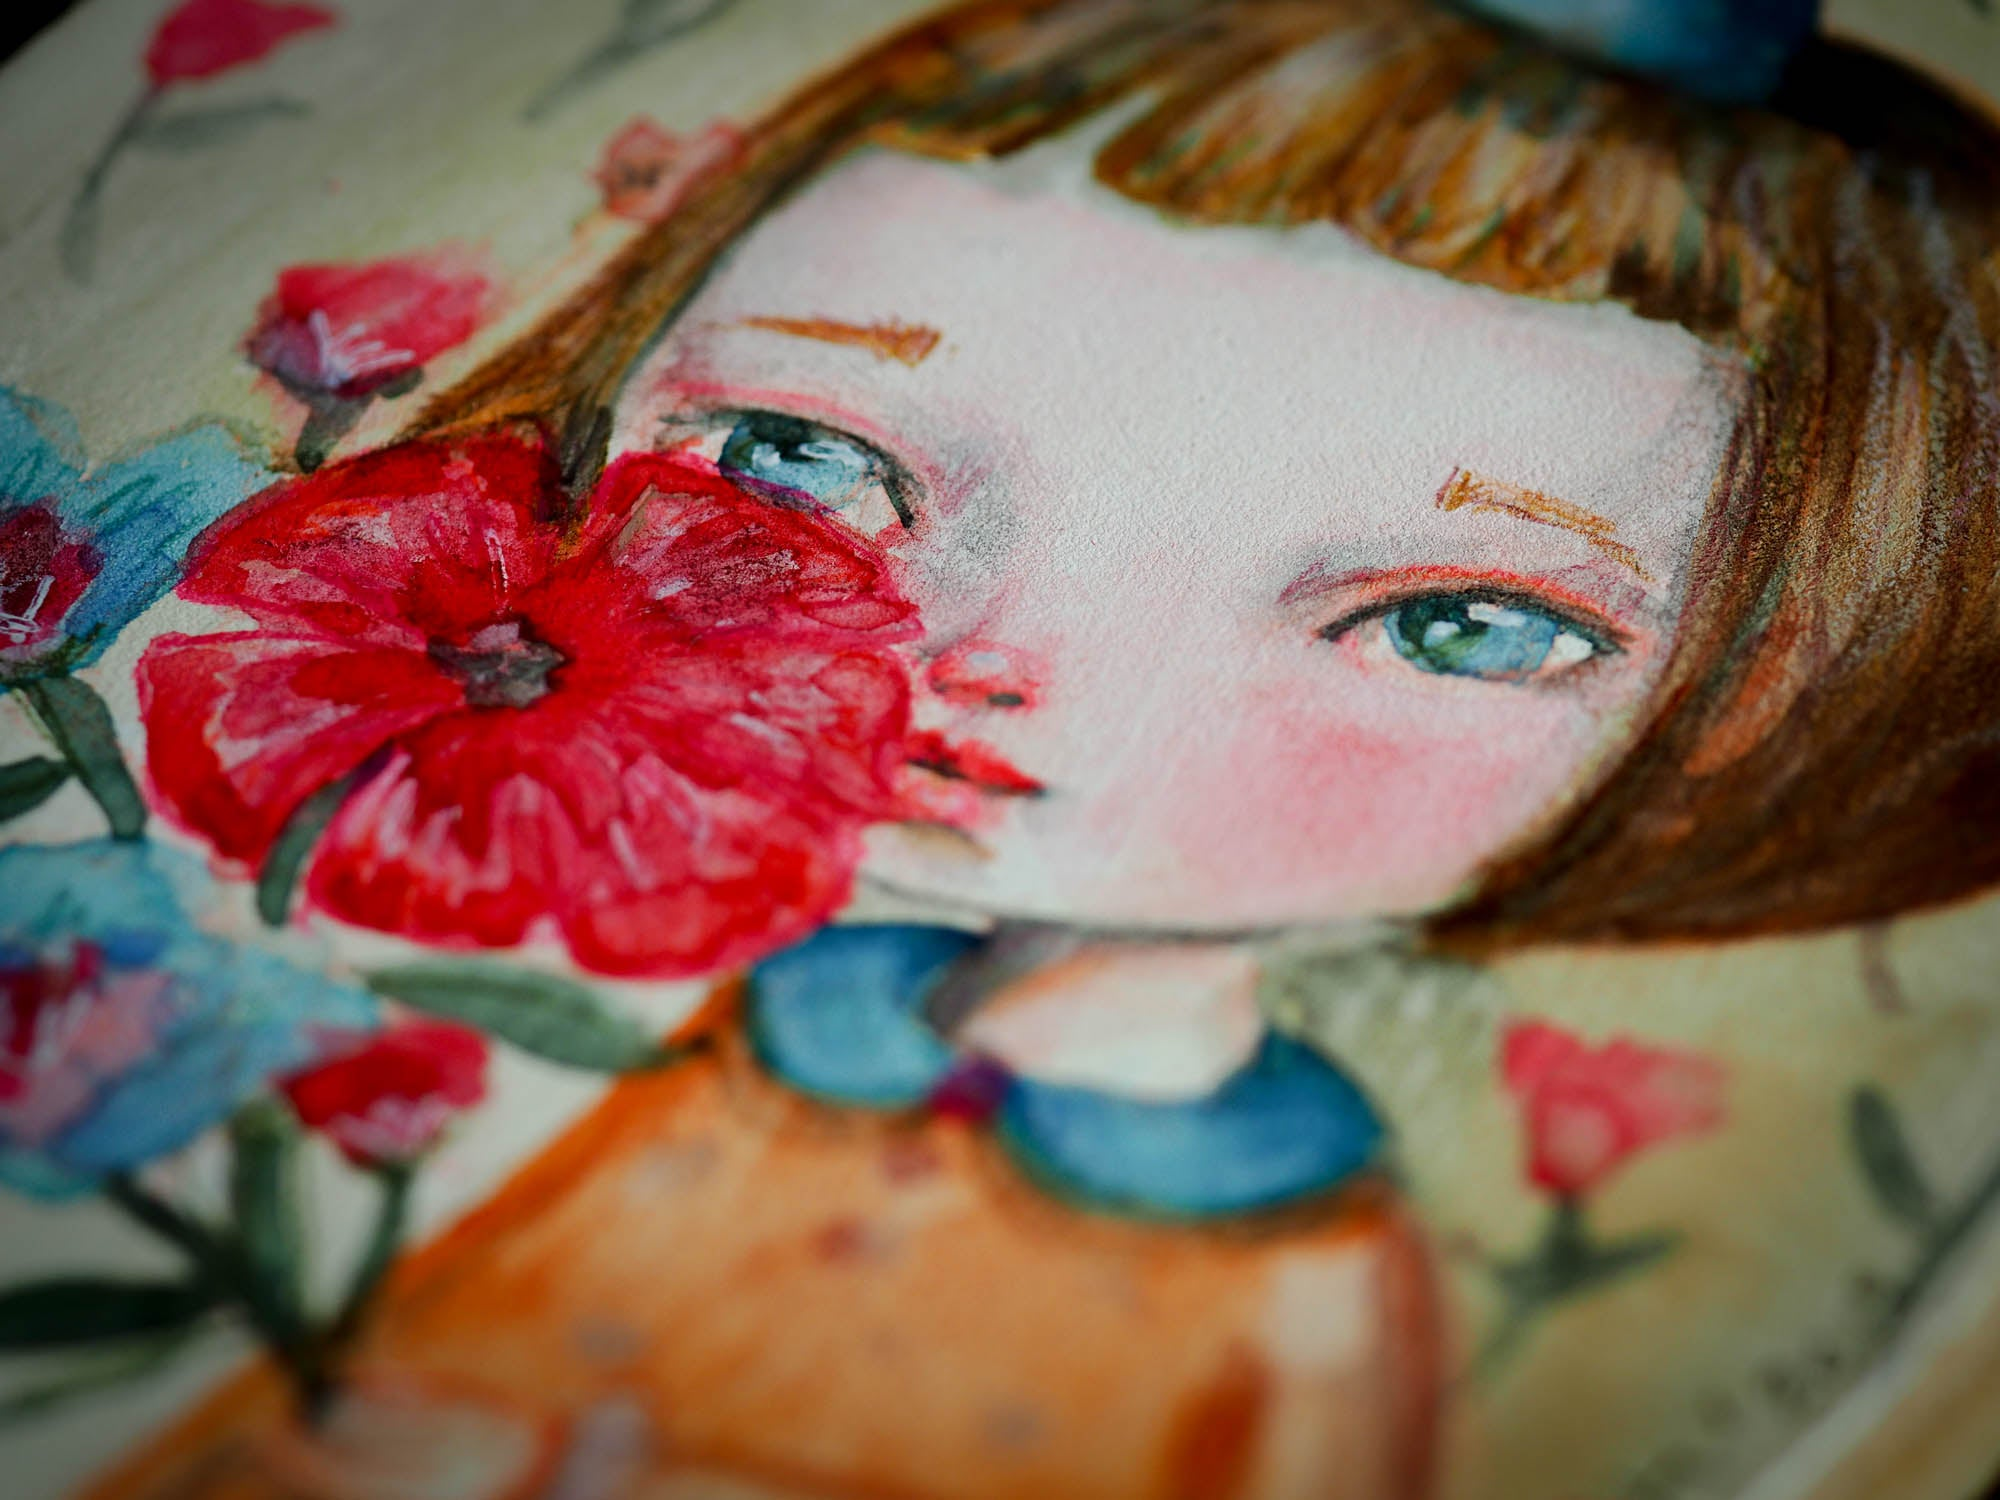 POPPY - An original watercolor painting by Danita Art